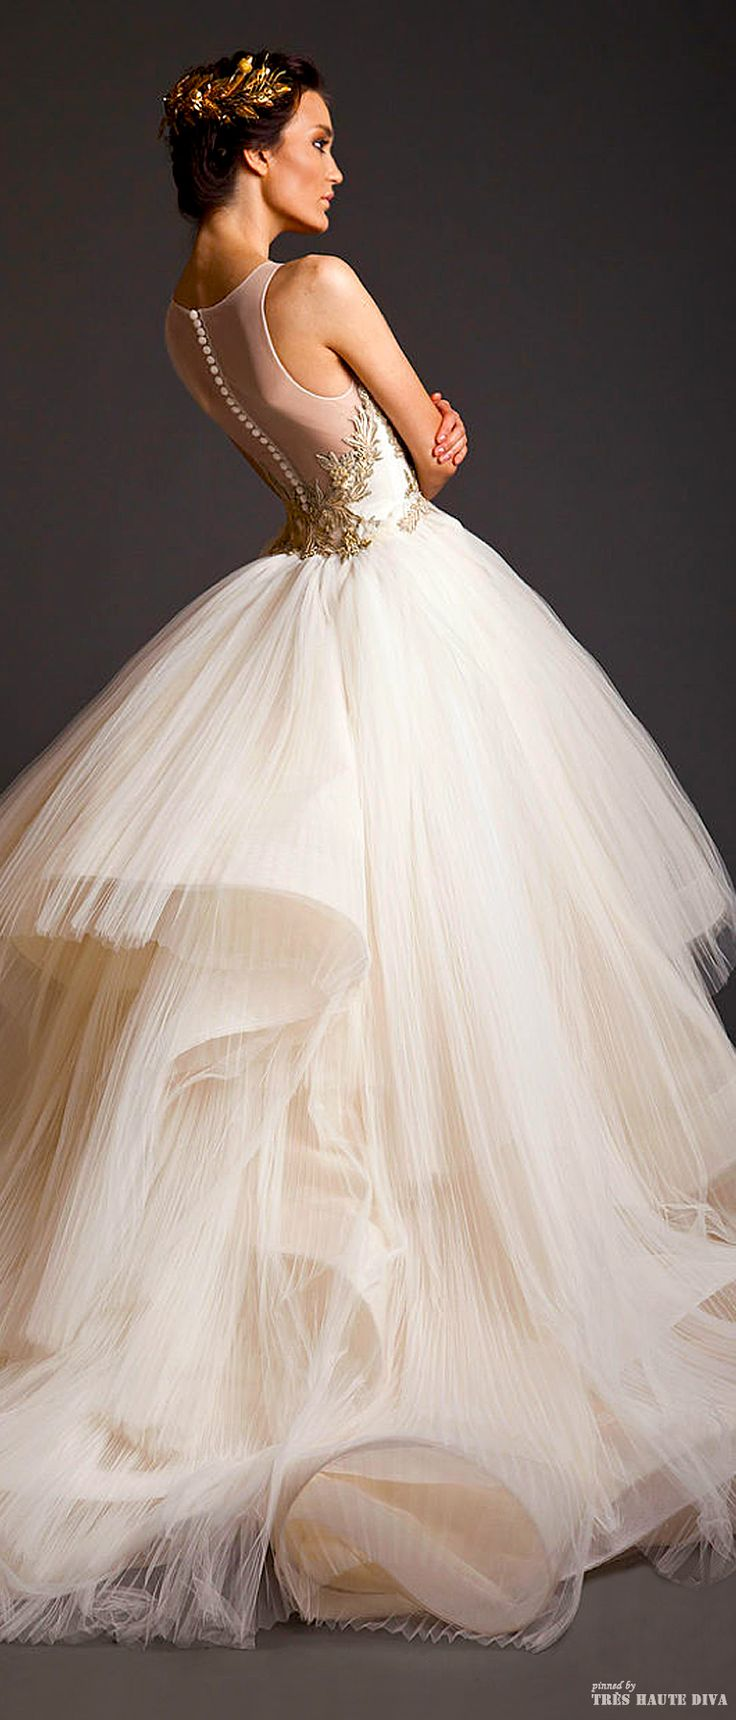 Krikor Jabotian Couture S/S 2014. We love beautifully designed and made clothes at Renaissance Fine Jewelry a store that lets women honor themselves.Live with confidence ladies!